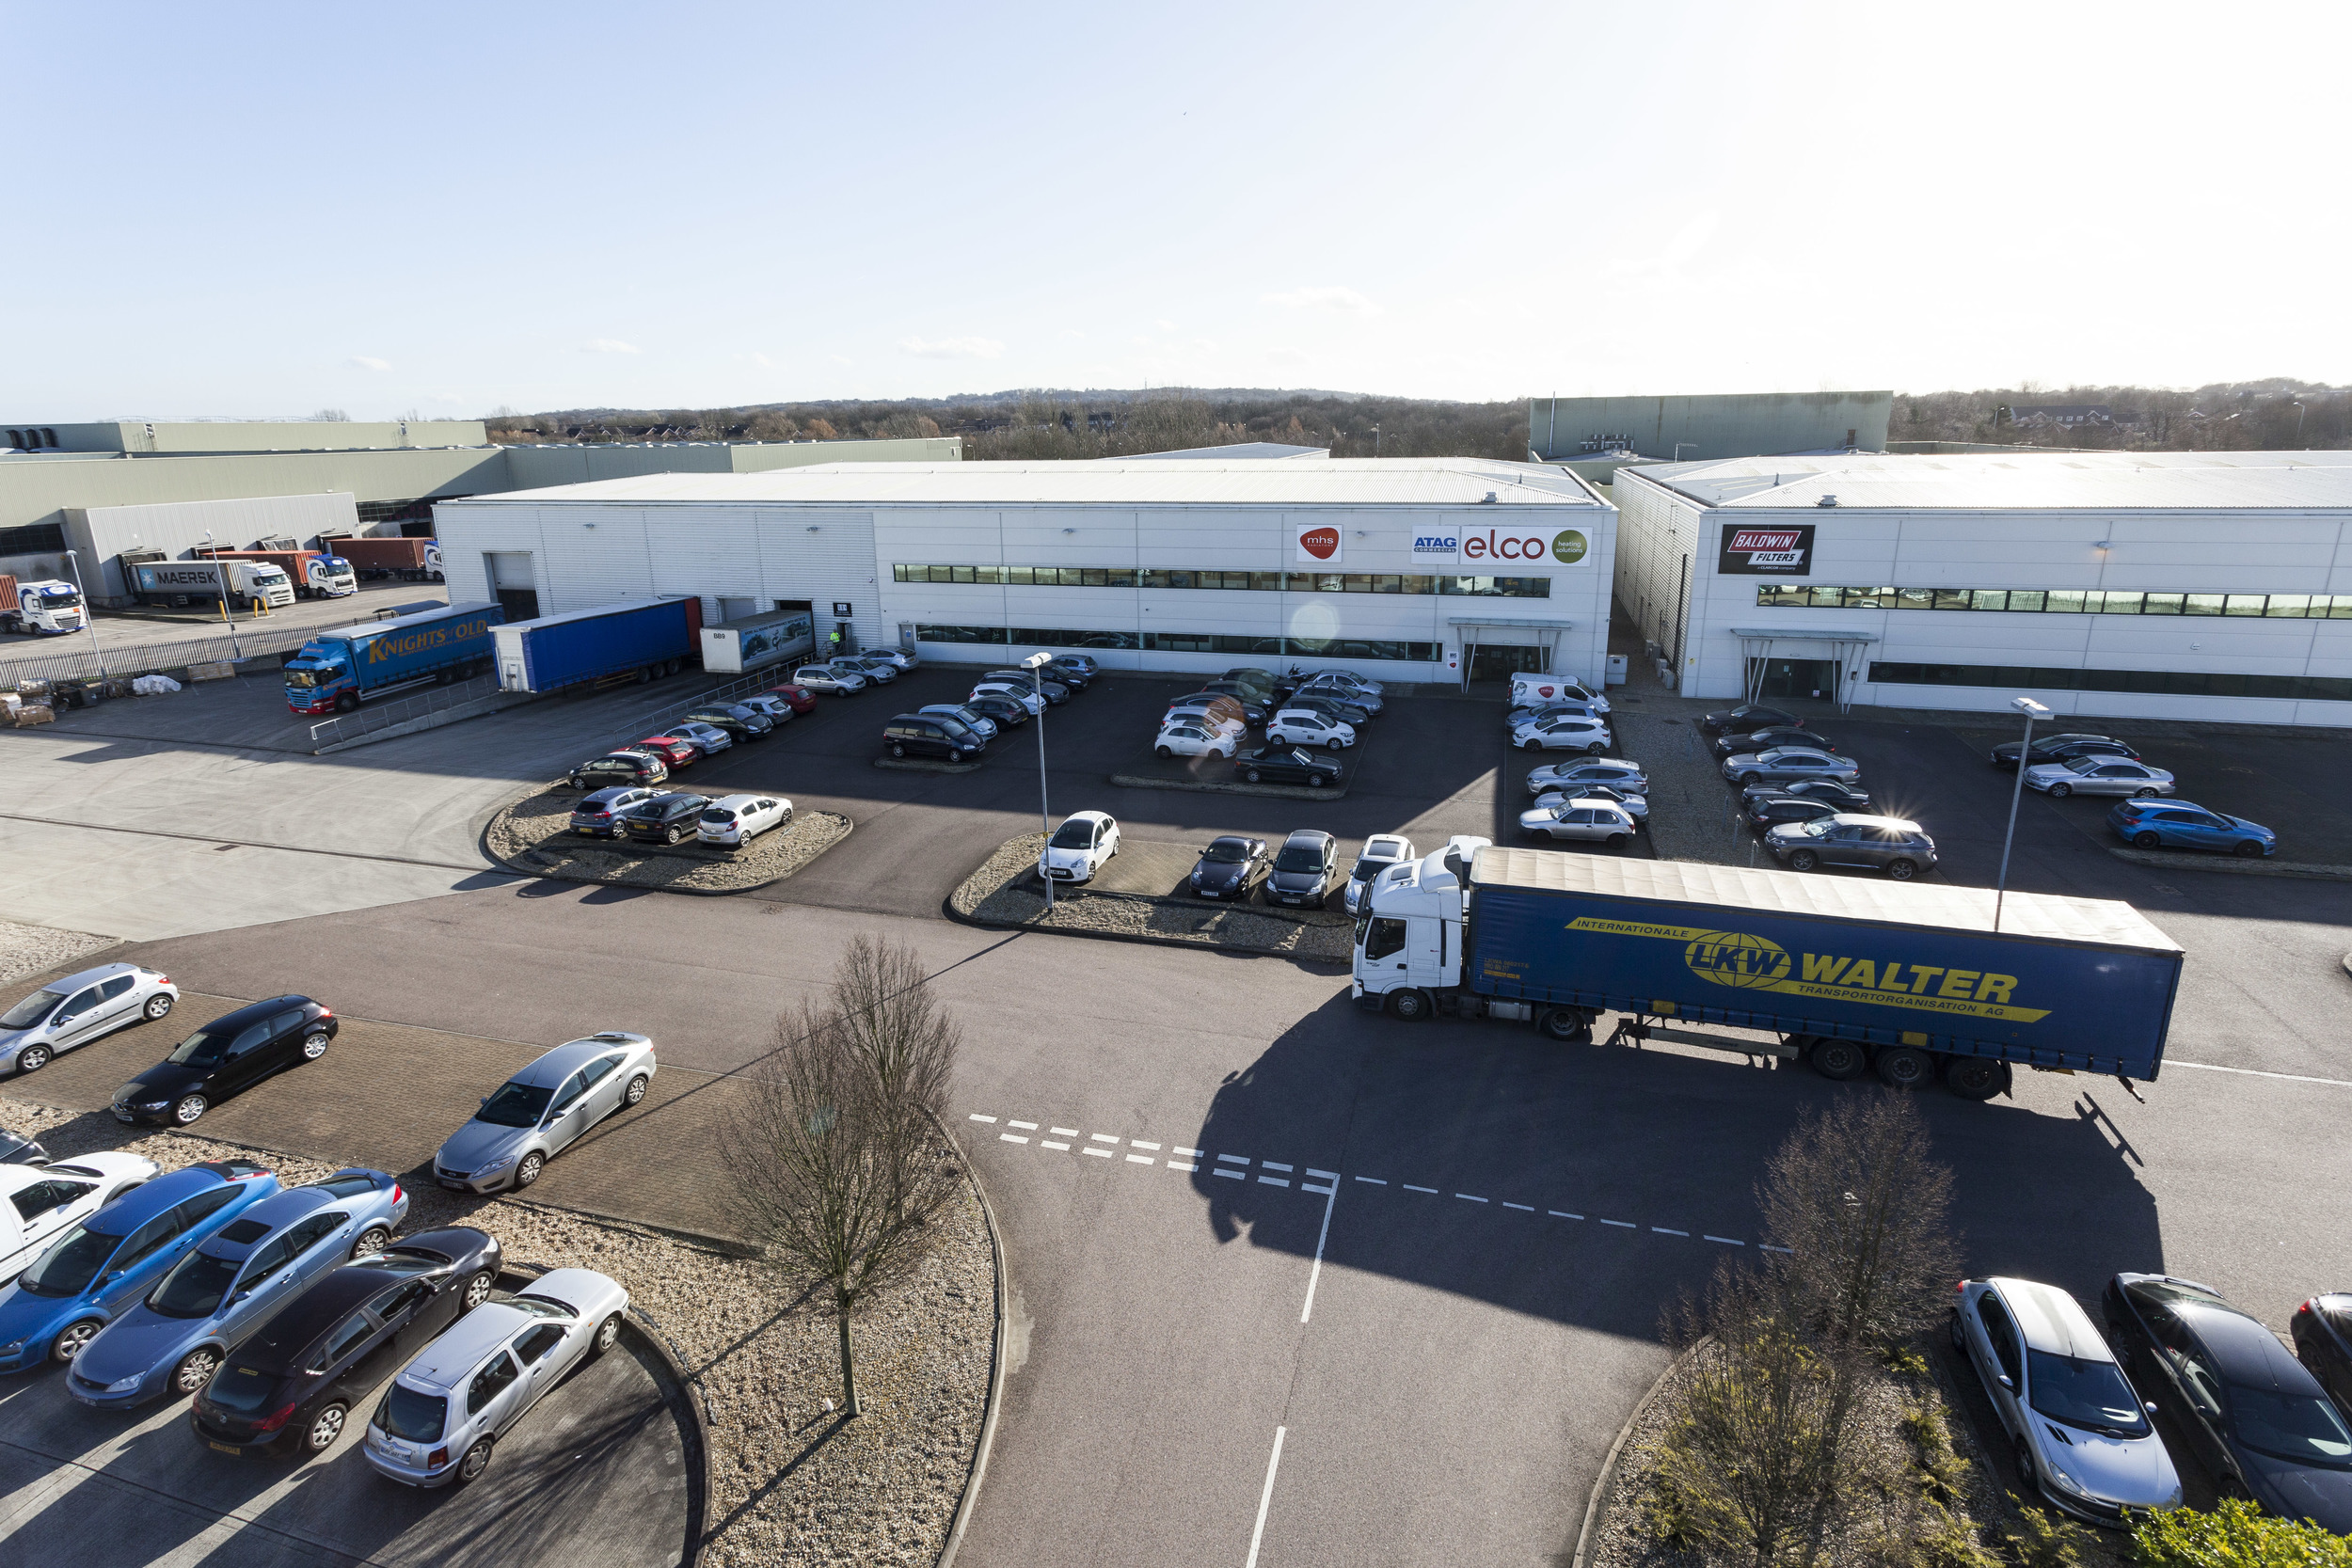 INVESTMENT - SALE    Modular Heating Group - Basildon   41,396 sq ft South East Distribution Warehouse   Client:  Aberdeen Asset Management   Purchaser:  London Metric Property PLC   Price:  £3,836,000 - 6.53%